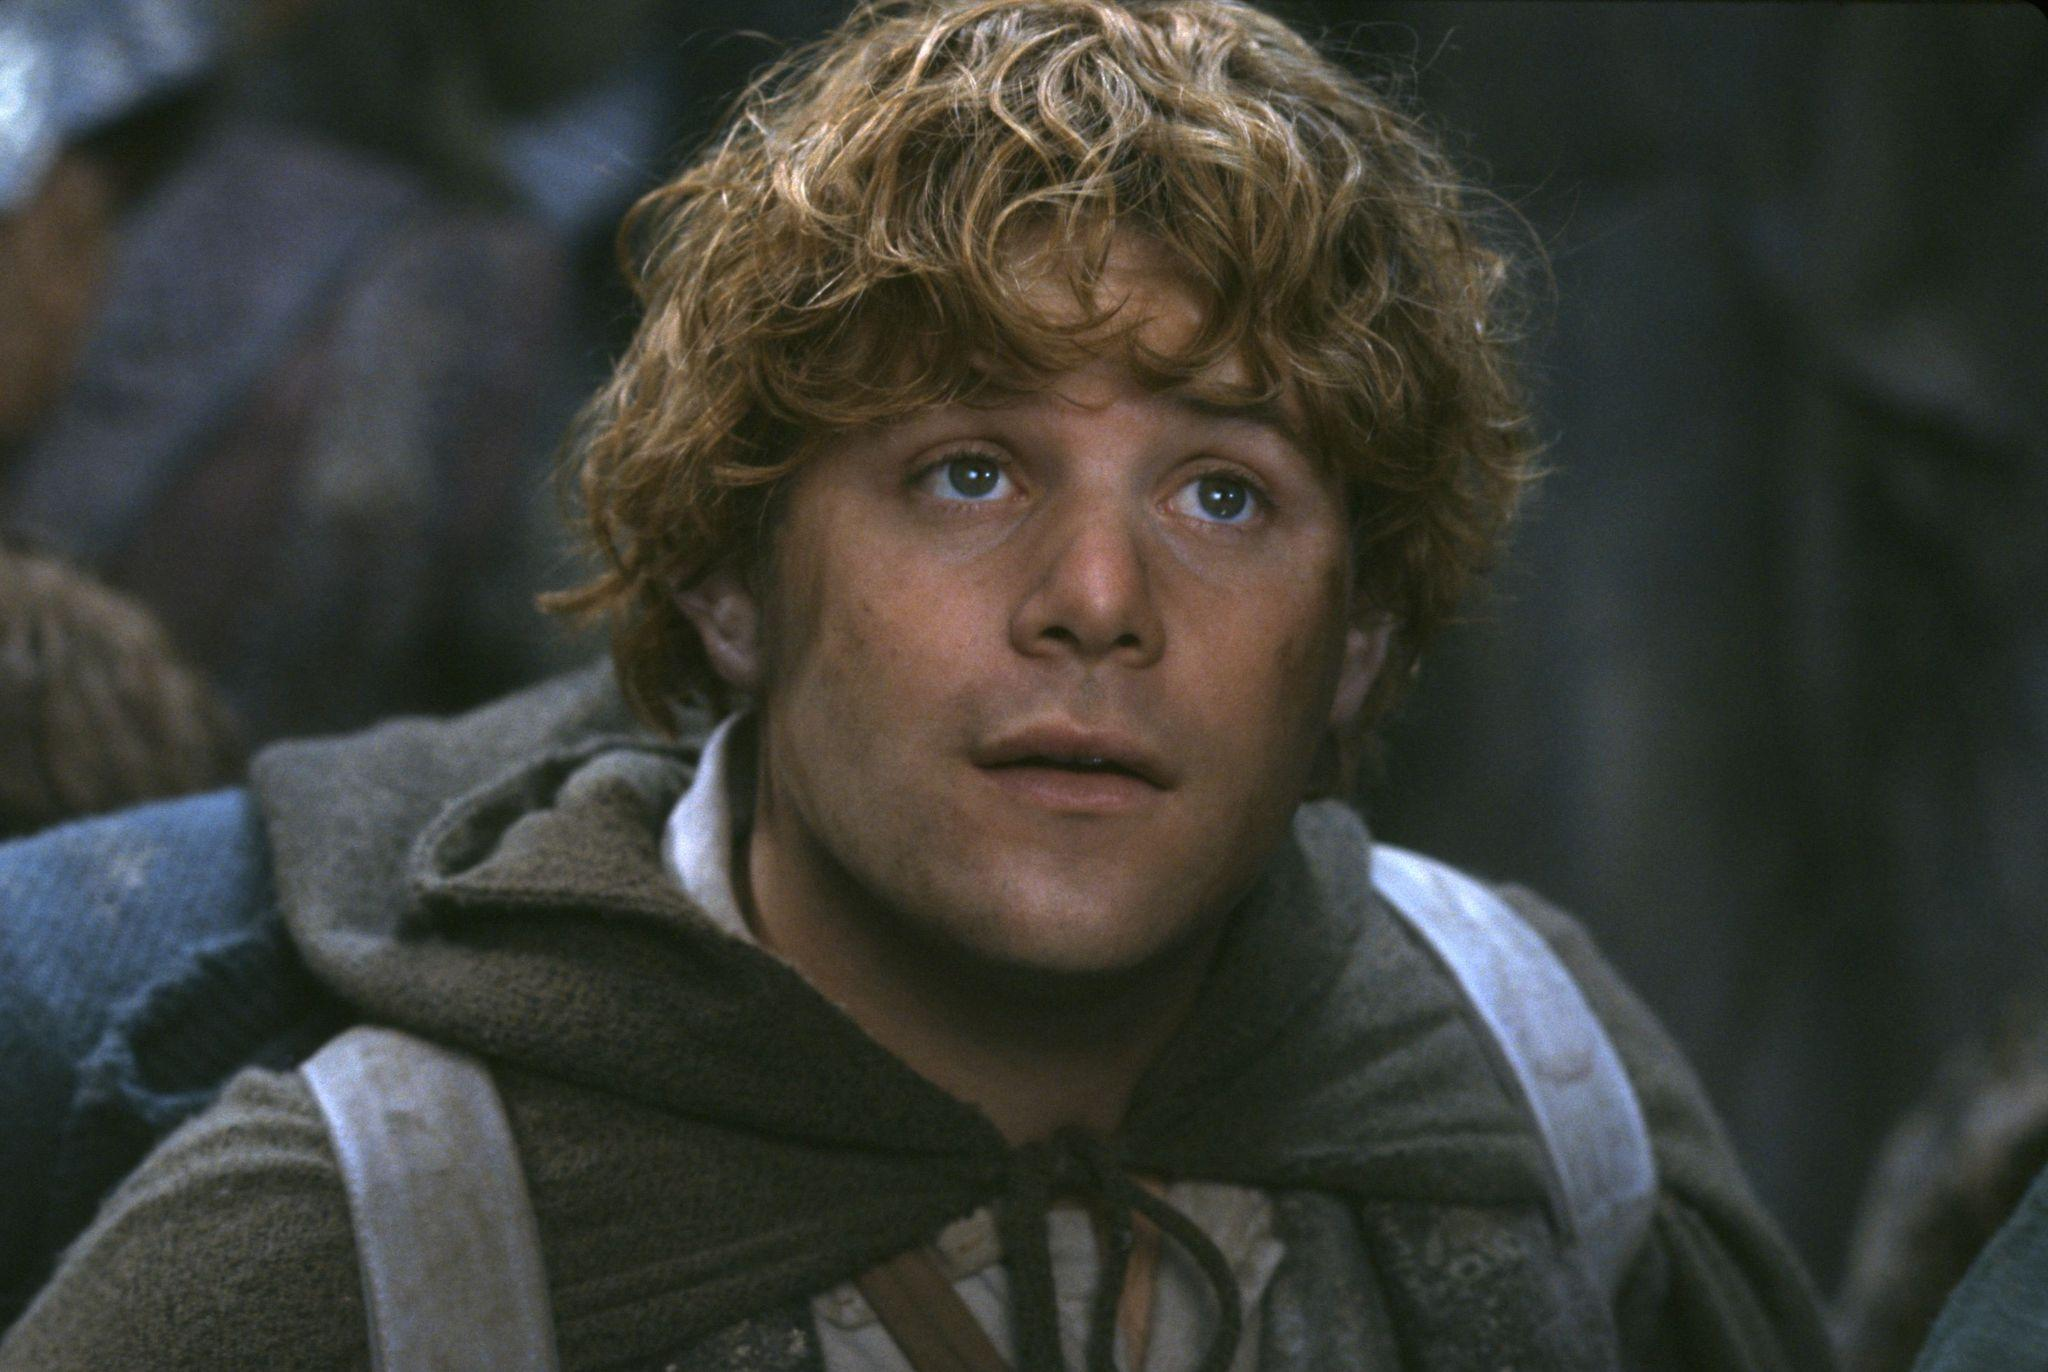 picture-of-sean-astin-in-the-lord-of-the-rings-the-fellowship-of-the-ring-large-picture